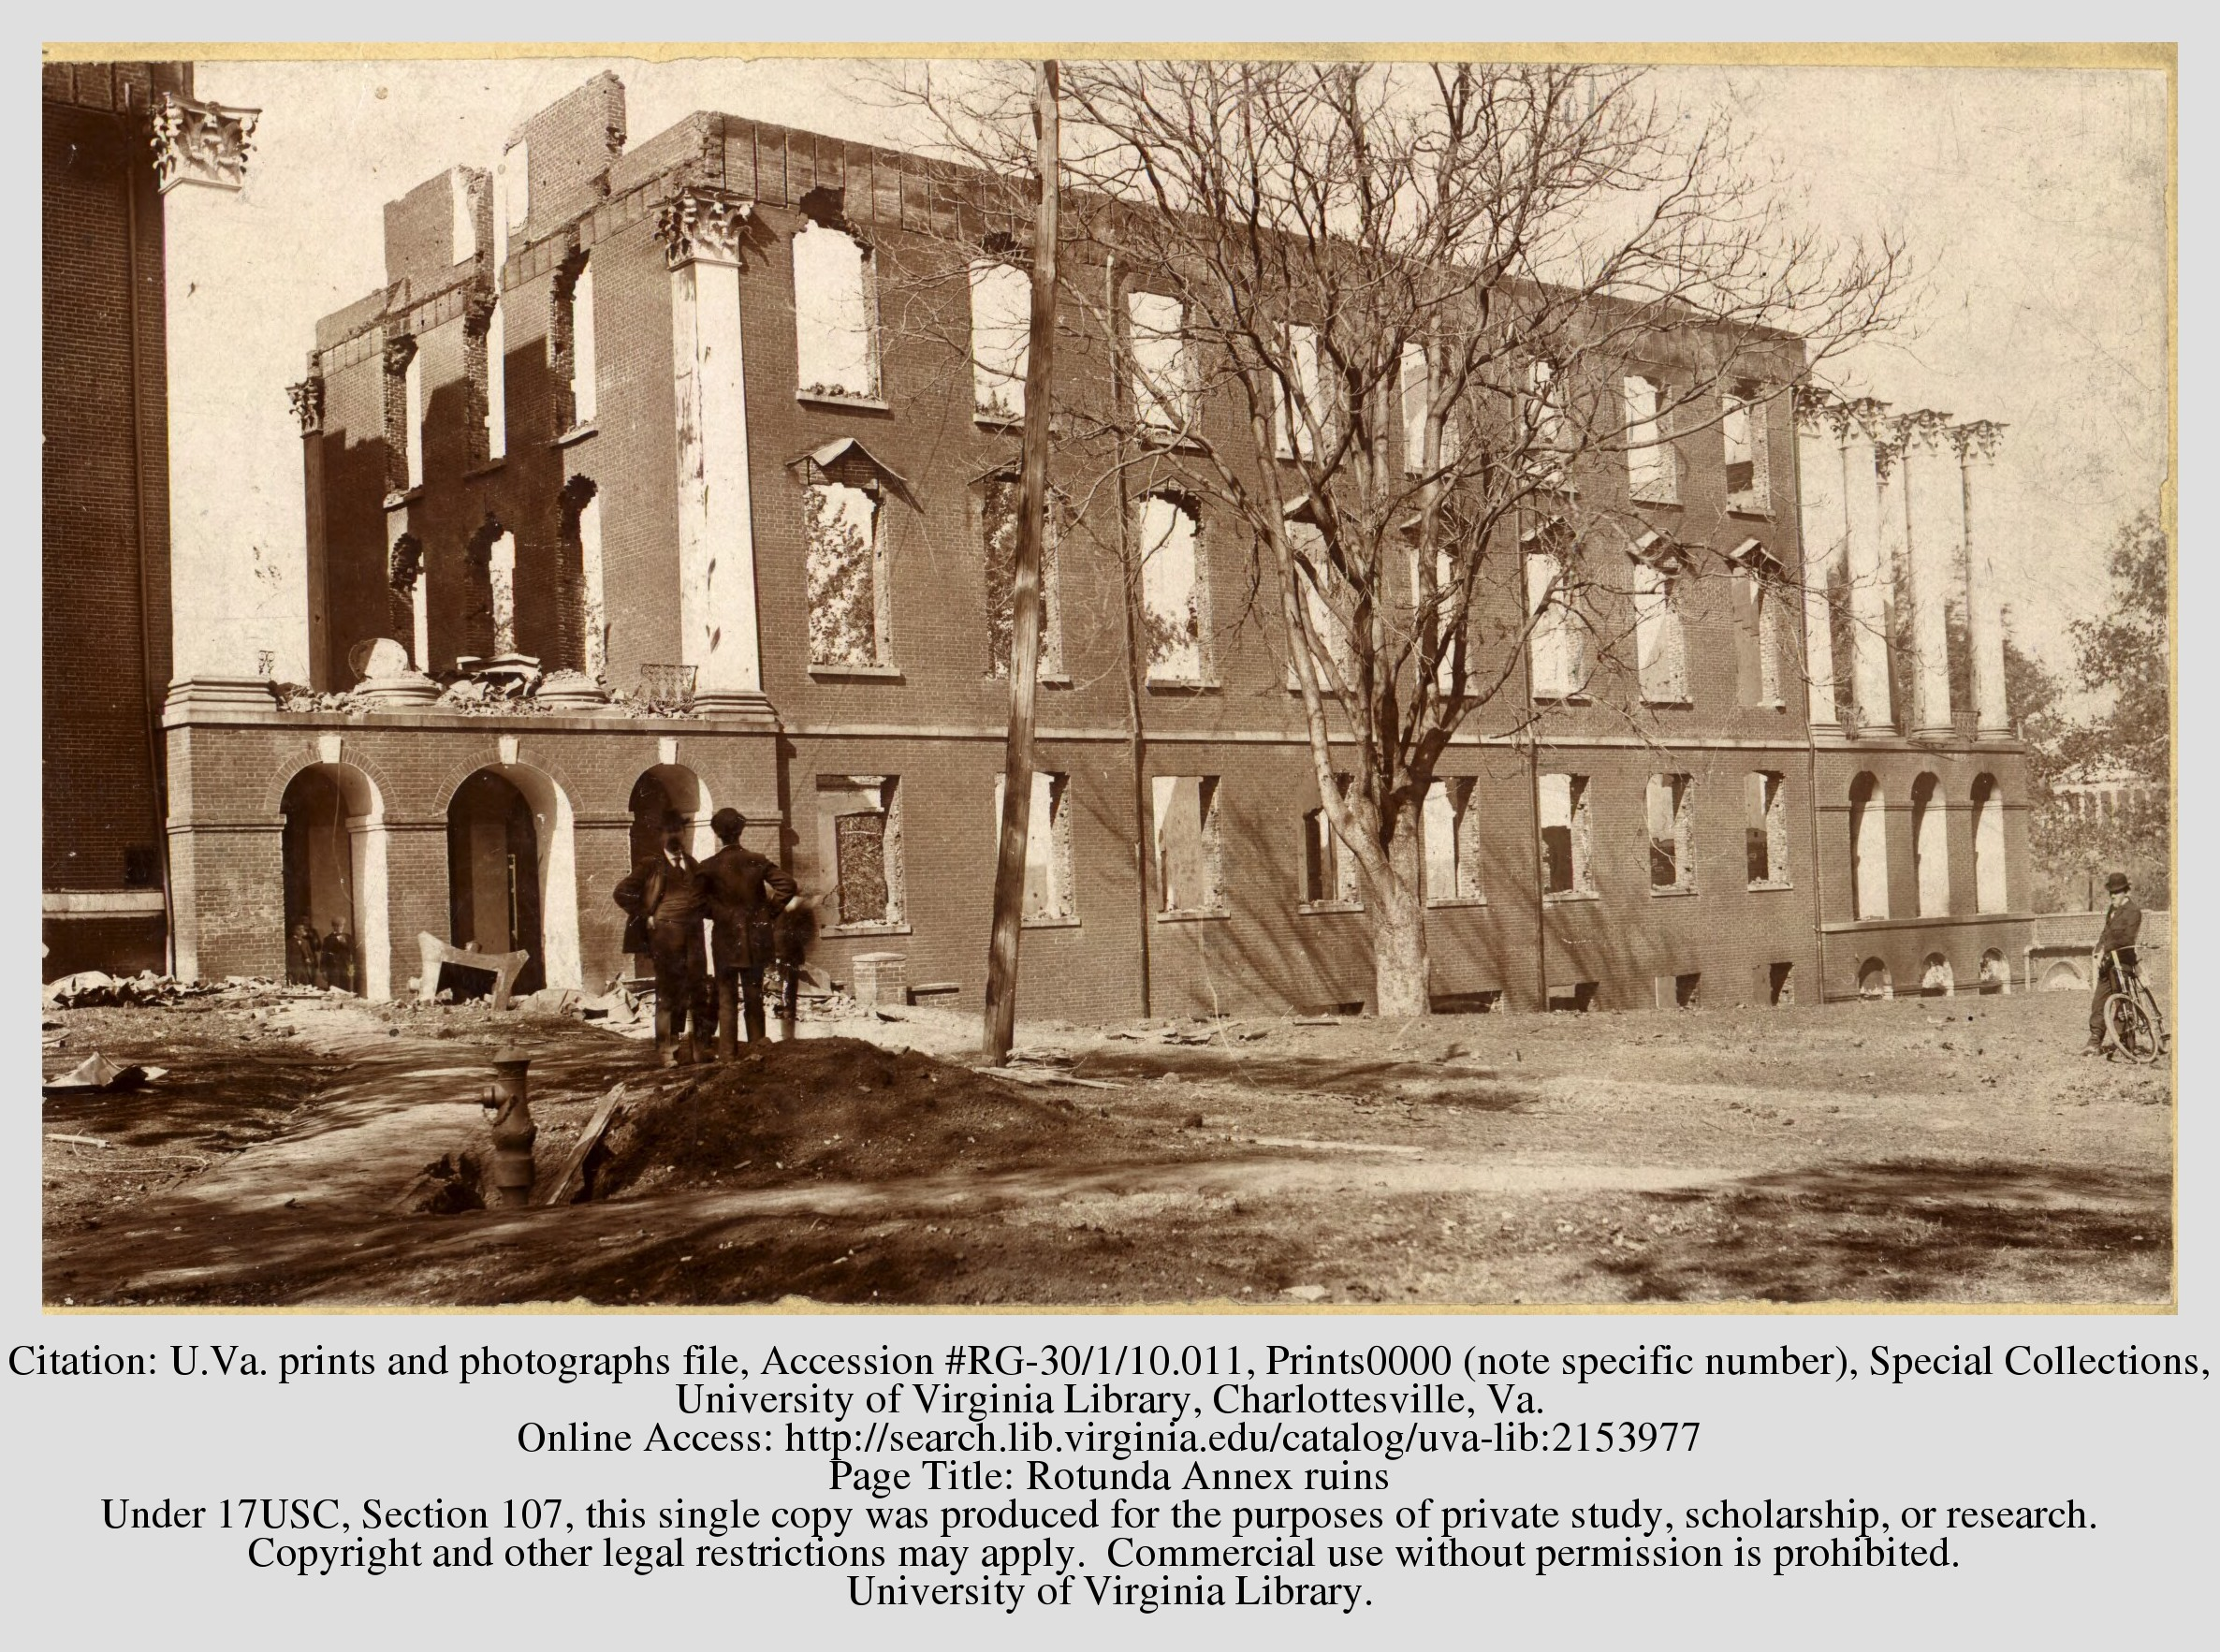 Ruins of the Rotunda Annex from the 1895 fire. Courtesy of the Library of the University of Virginia.